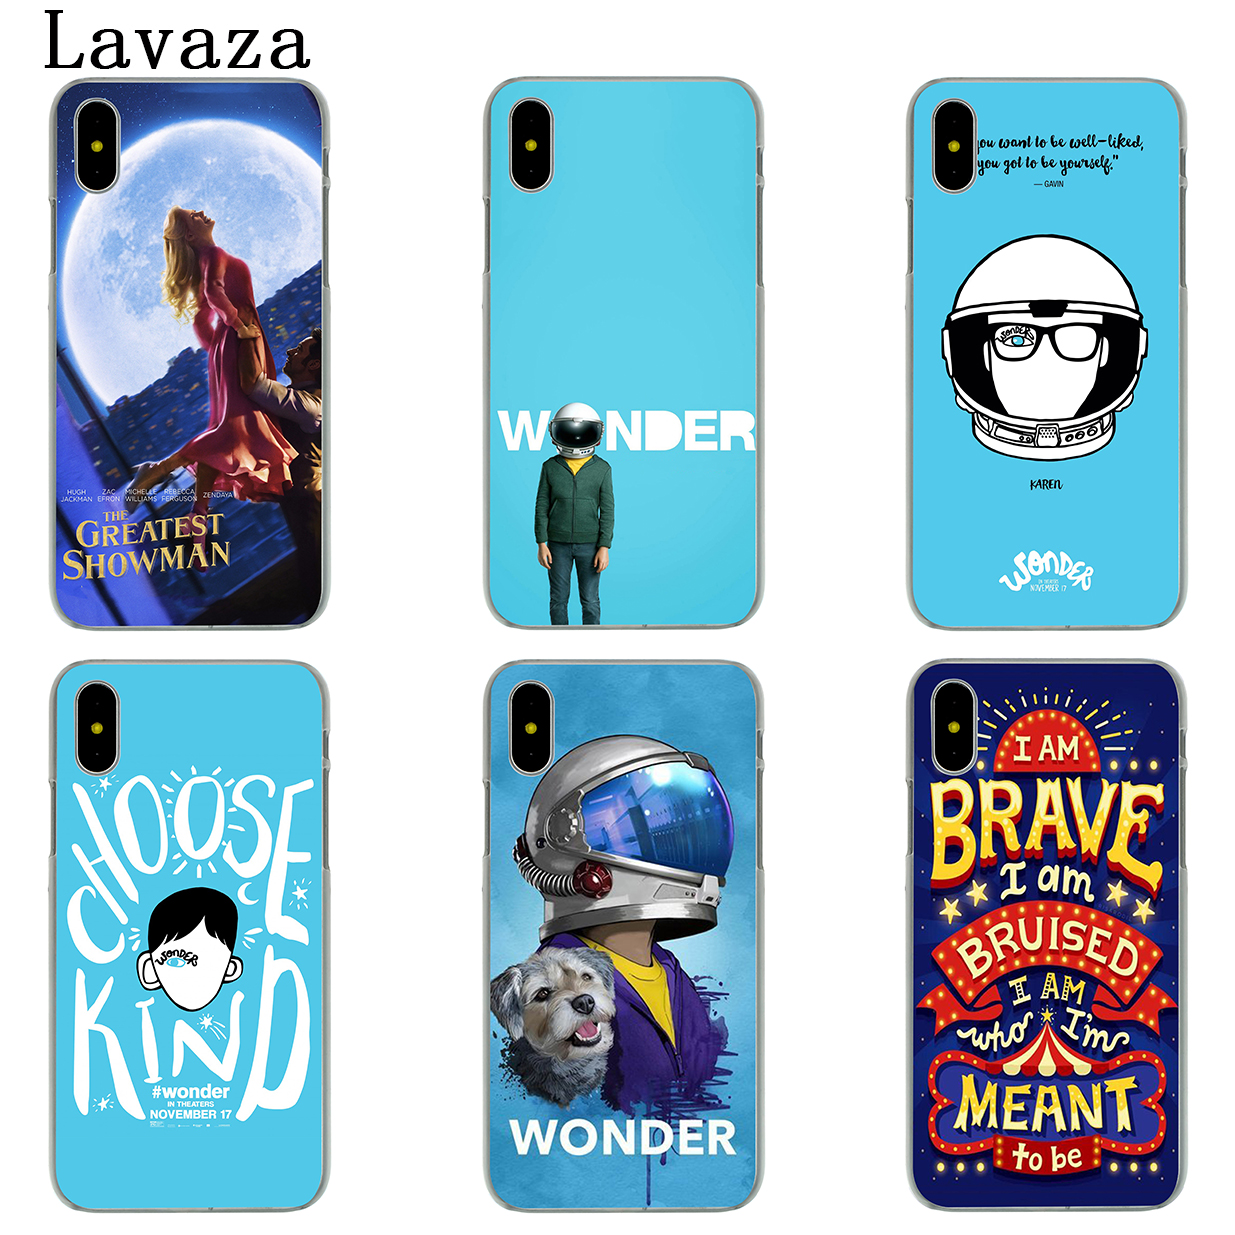 the greatest showman phone case iphone 8 plus